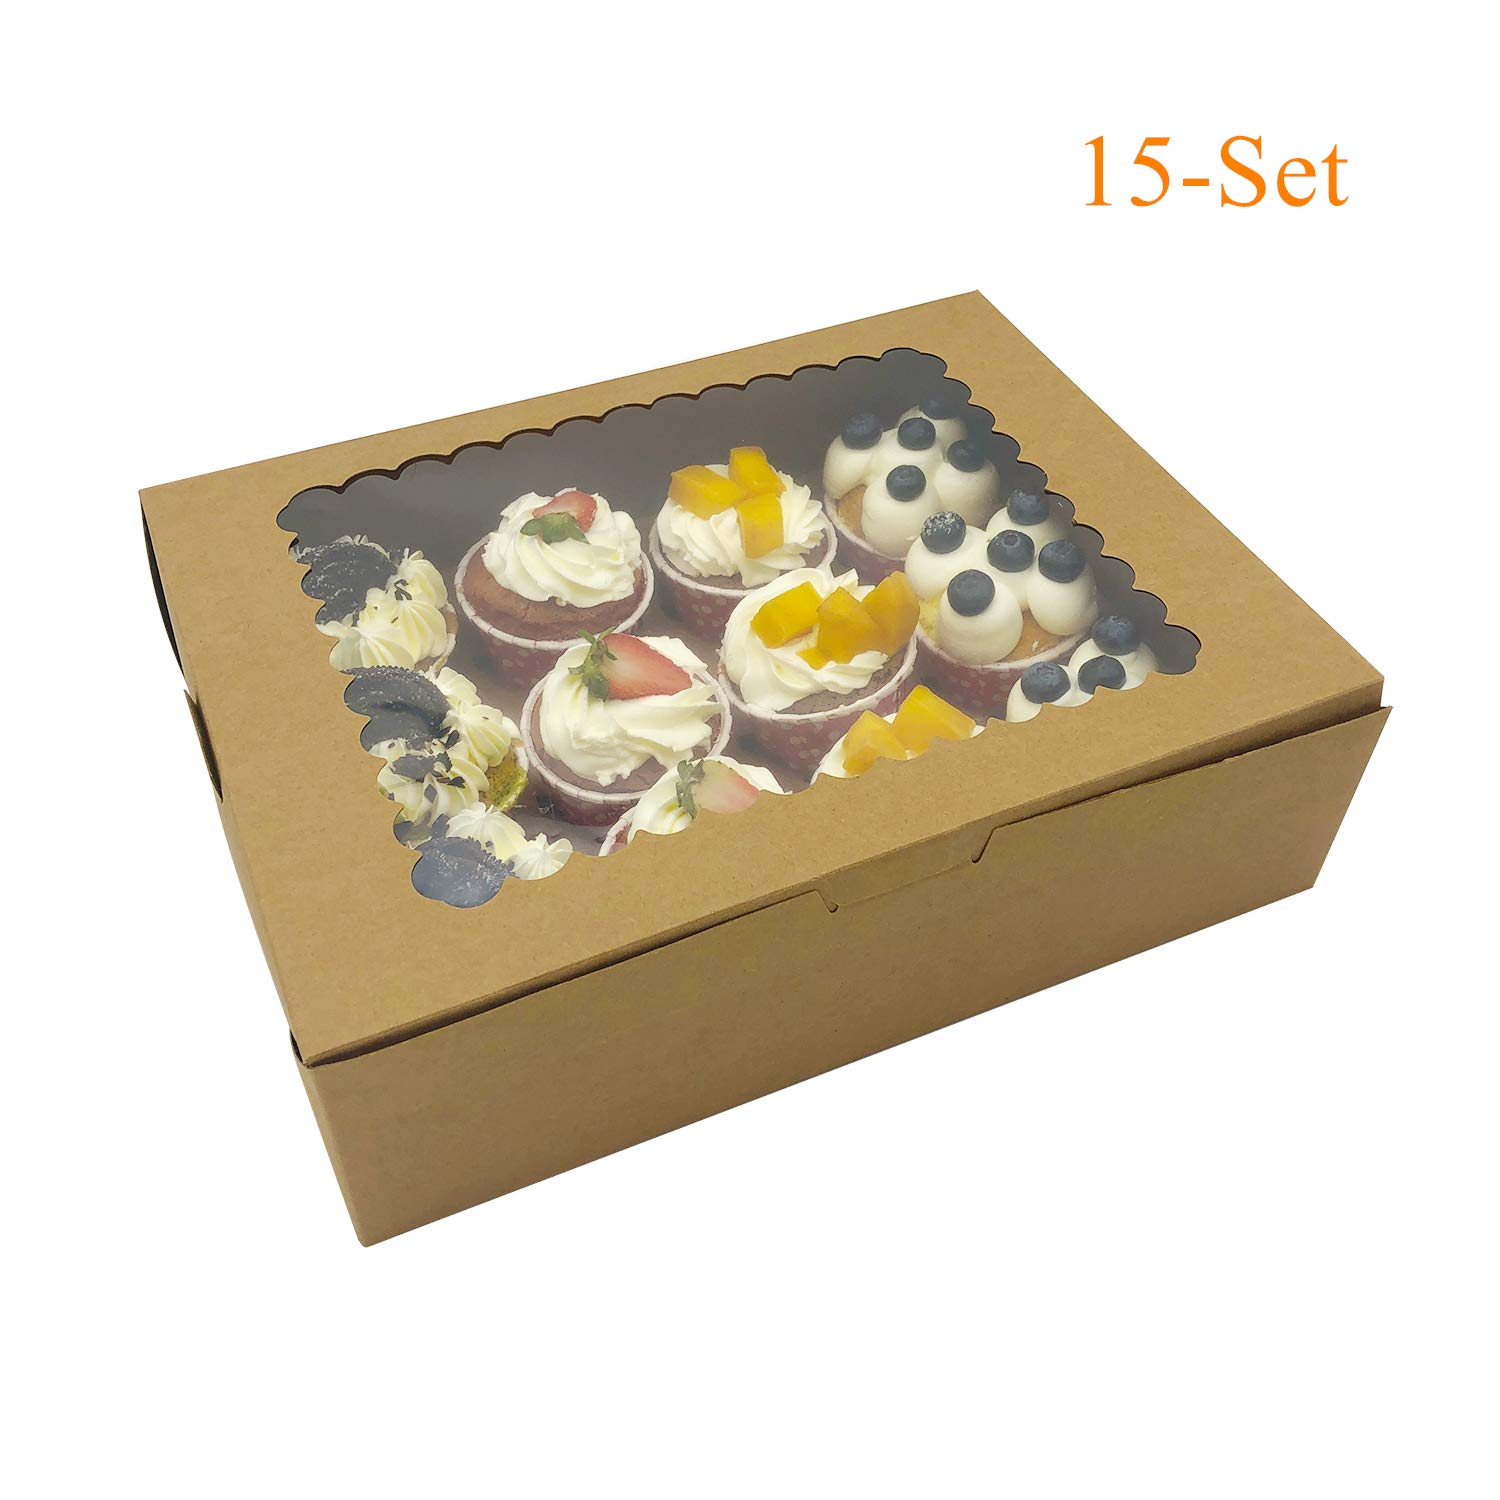 15-Set Cupcake Boxes Hold 12 Standard Cupcakes, Brown Cupcake Carrier, Cupcake Containers, Food Grade Kraft Cupcake Holders for Cookies, Bakeries, Muffins and Pastries by Aglahome